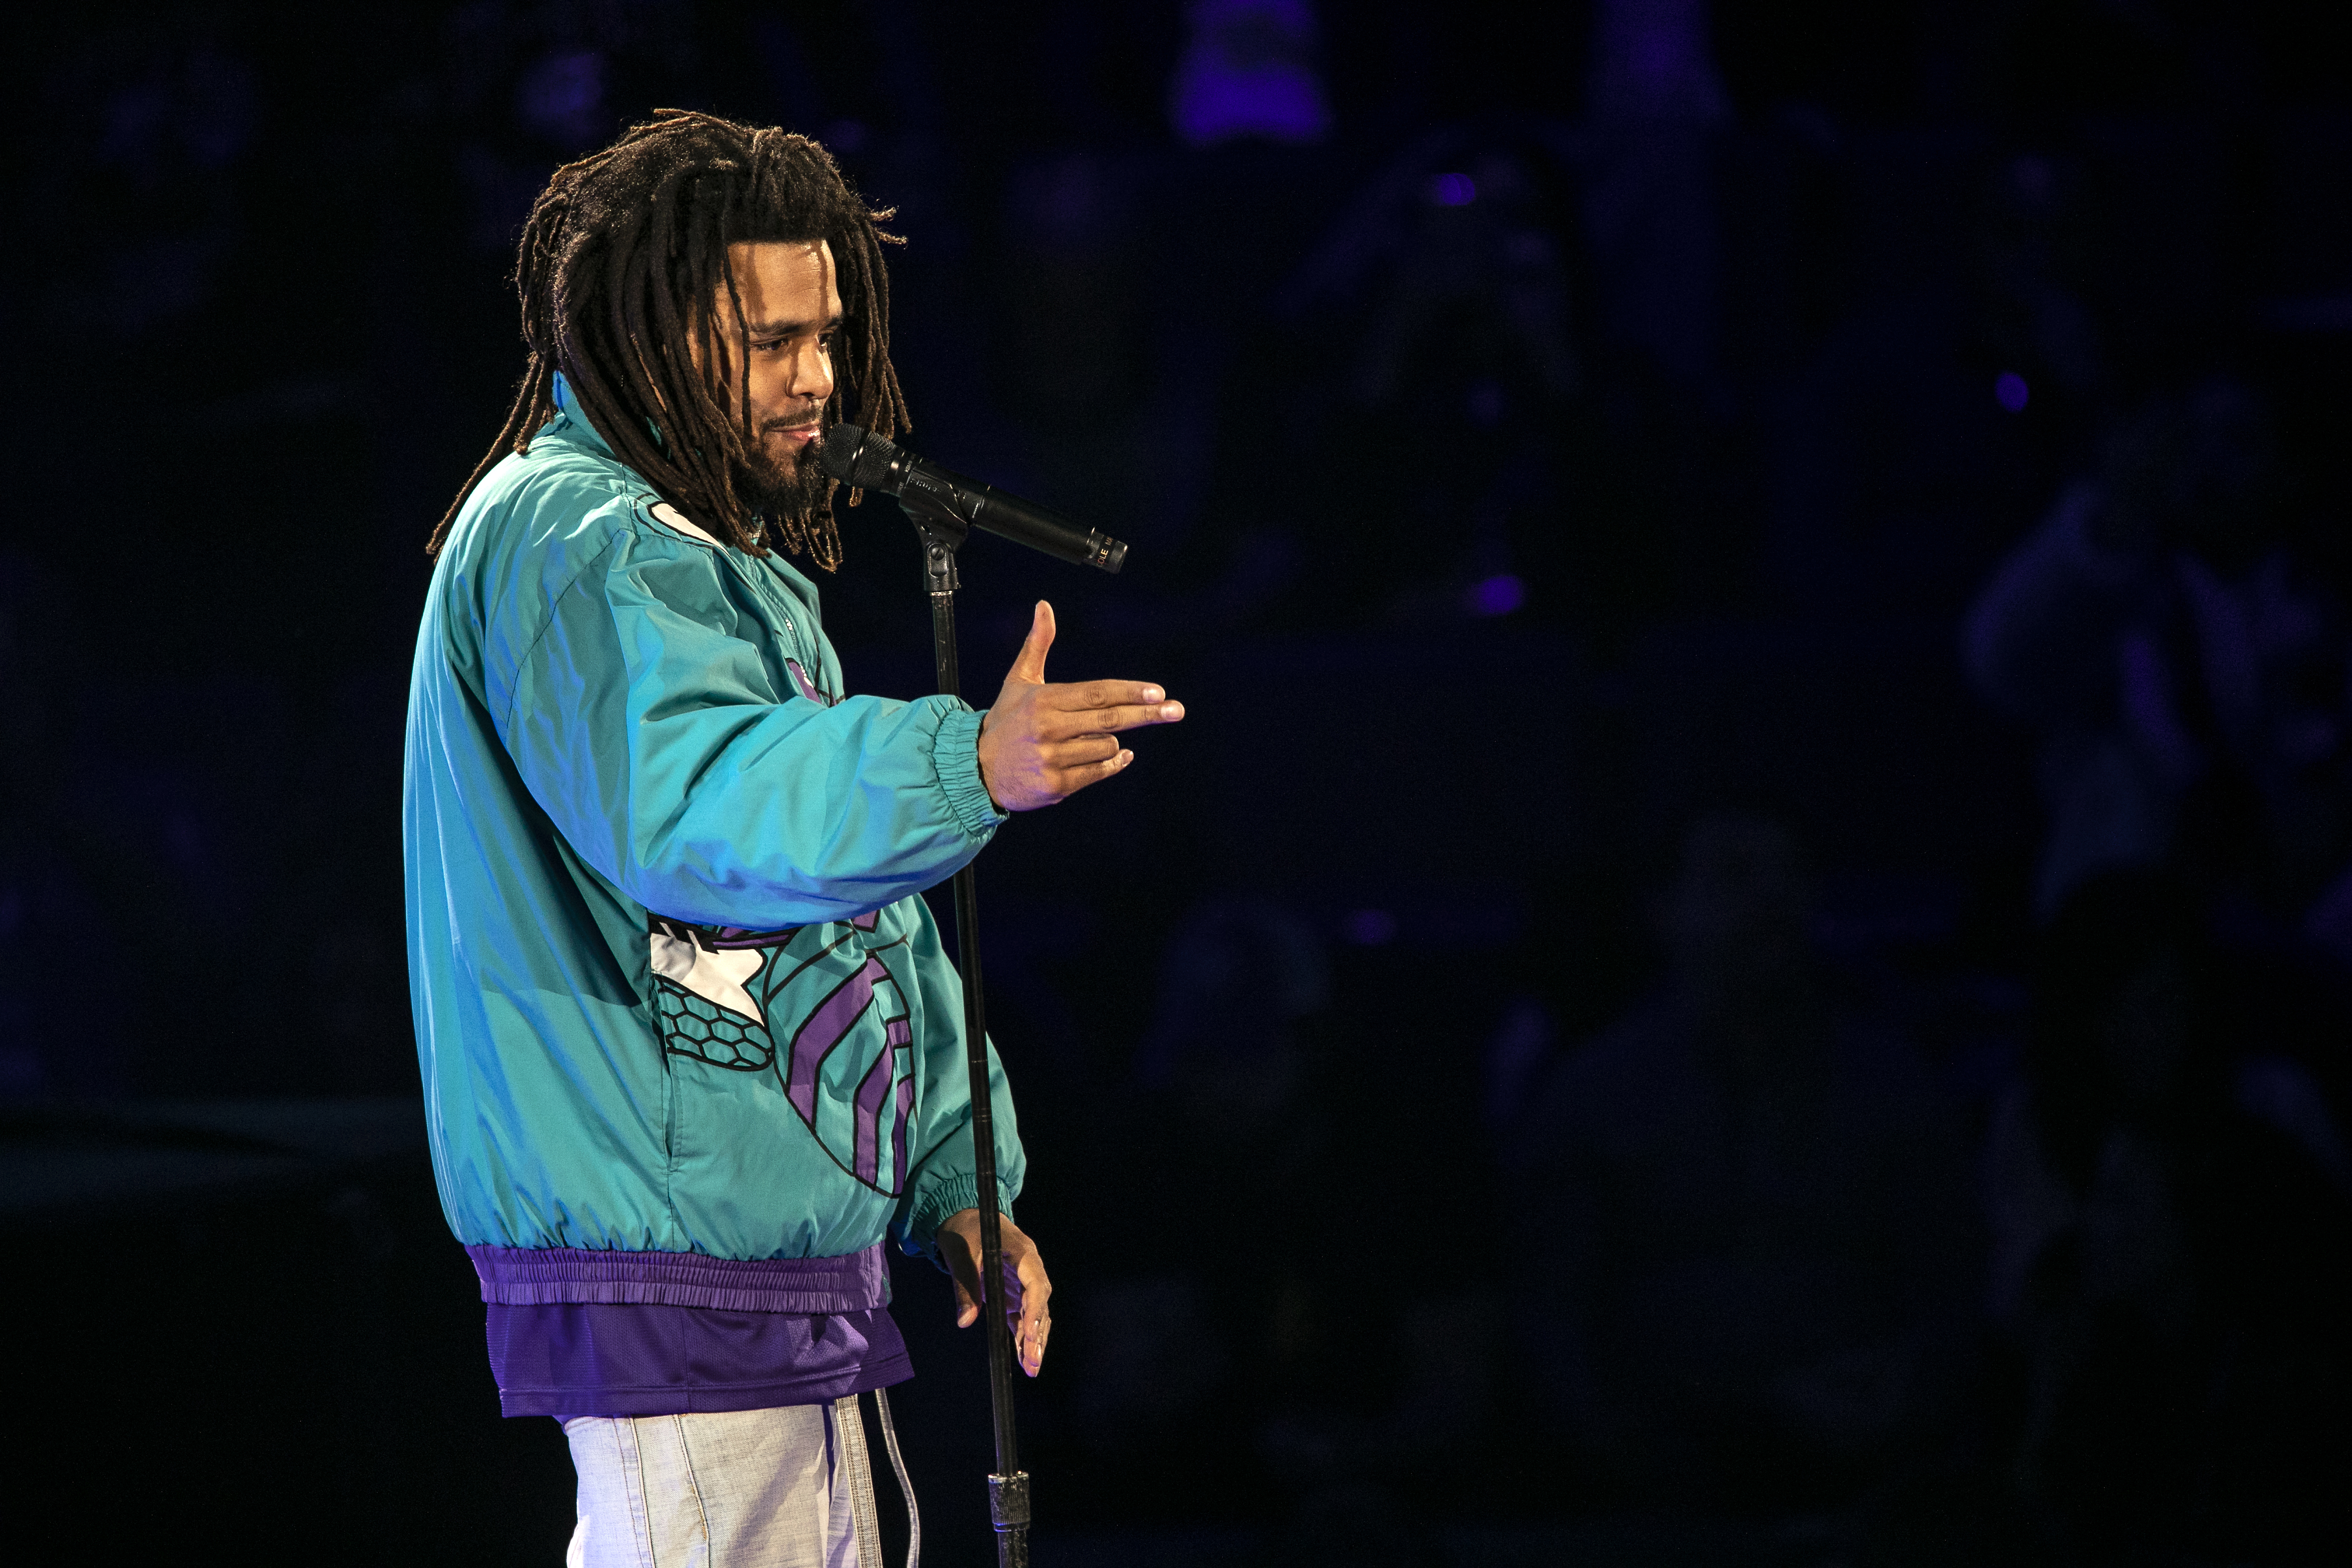 J. Cole Previews Upcoming 'The Fall Off' LP With Singles 'The Climb Back,' 'Lion King on Ice' - Rolling Stone